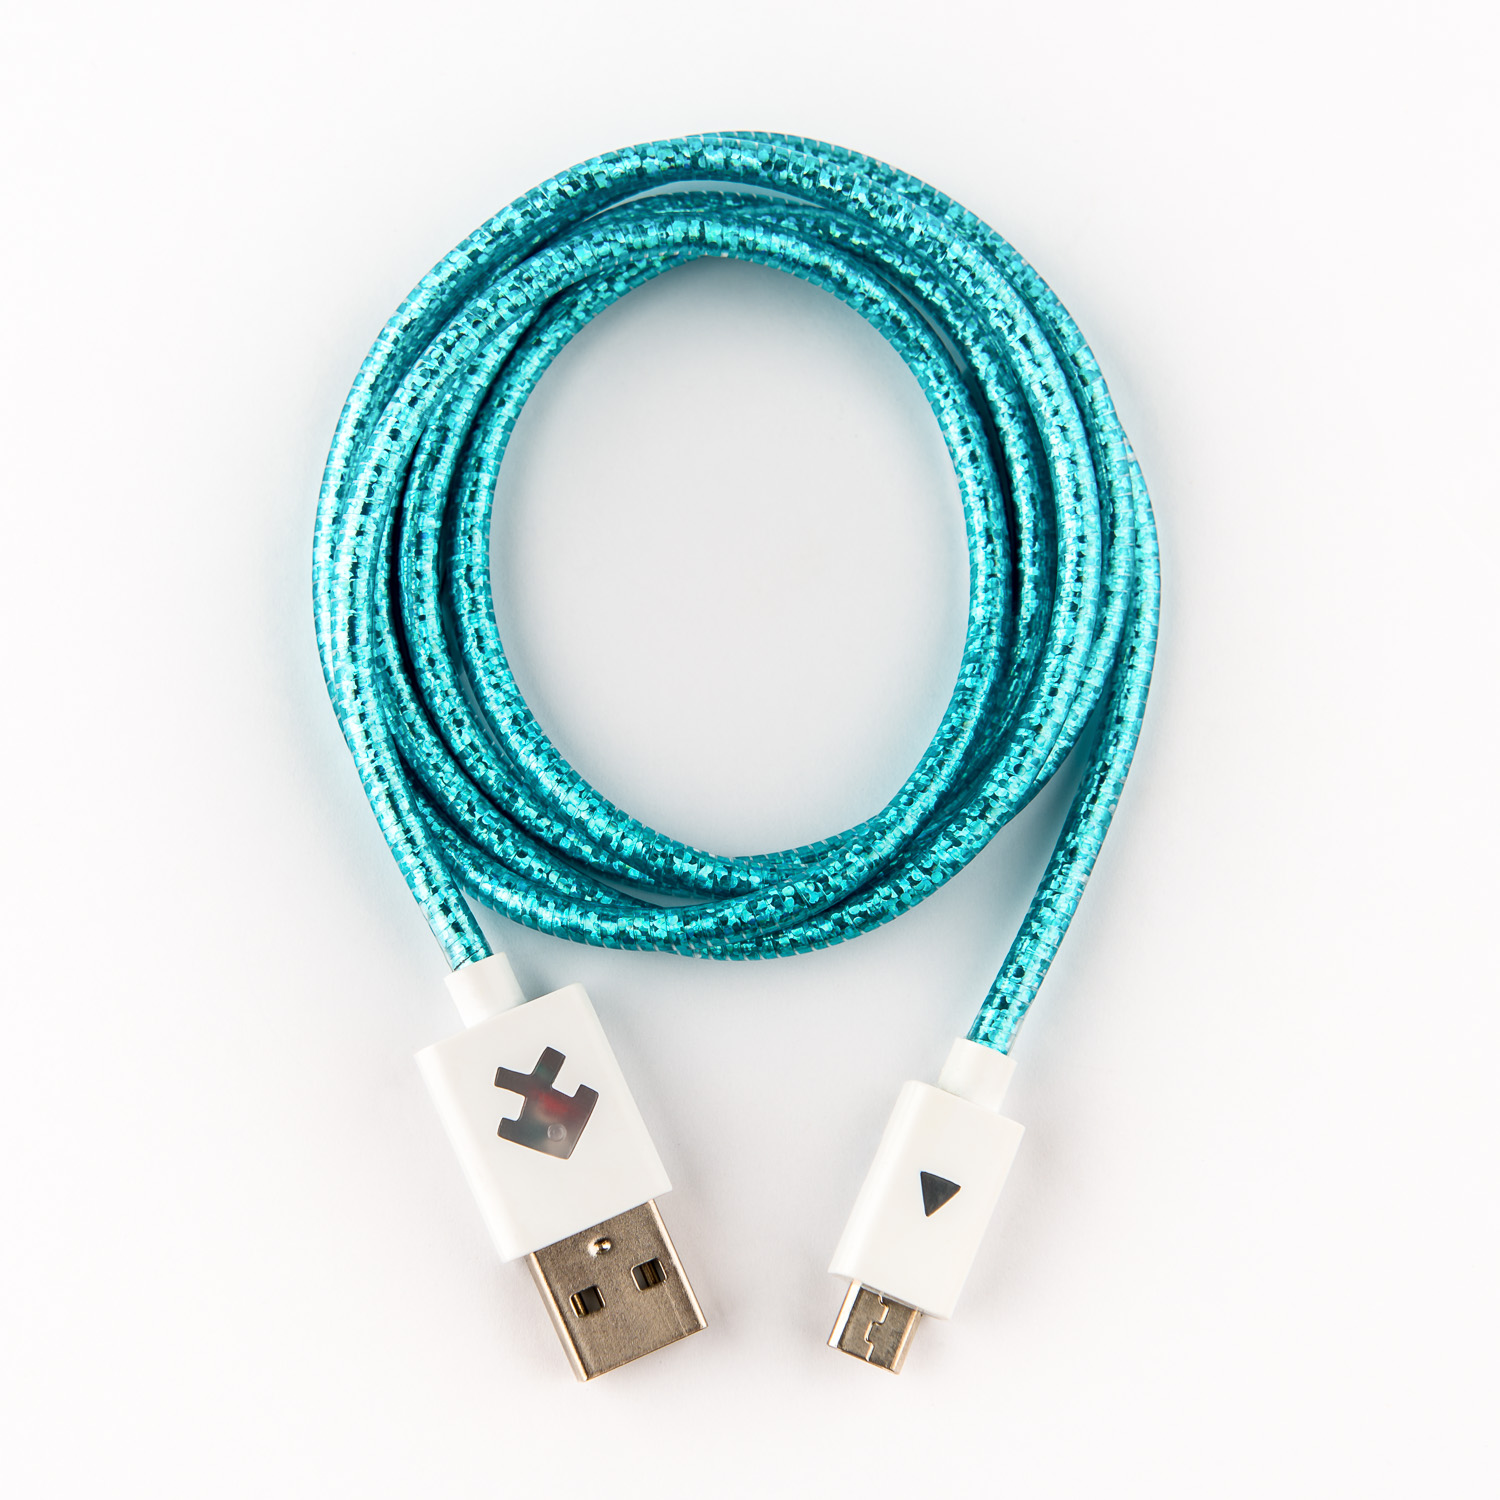 Xcyte Ultra fast Android USB recharge cable (CYAN) – 1 metre